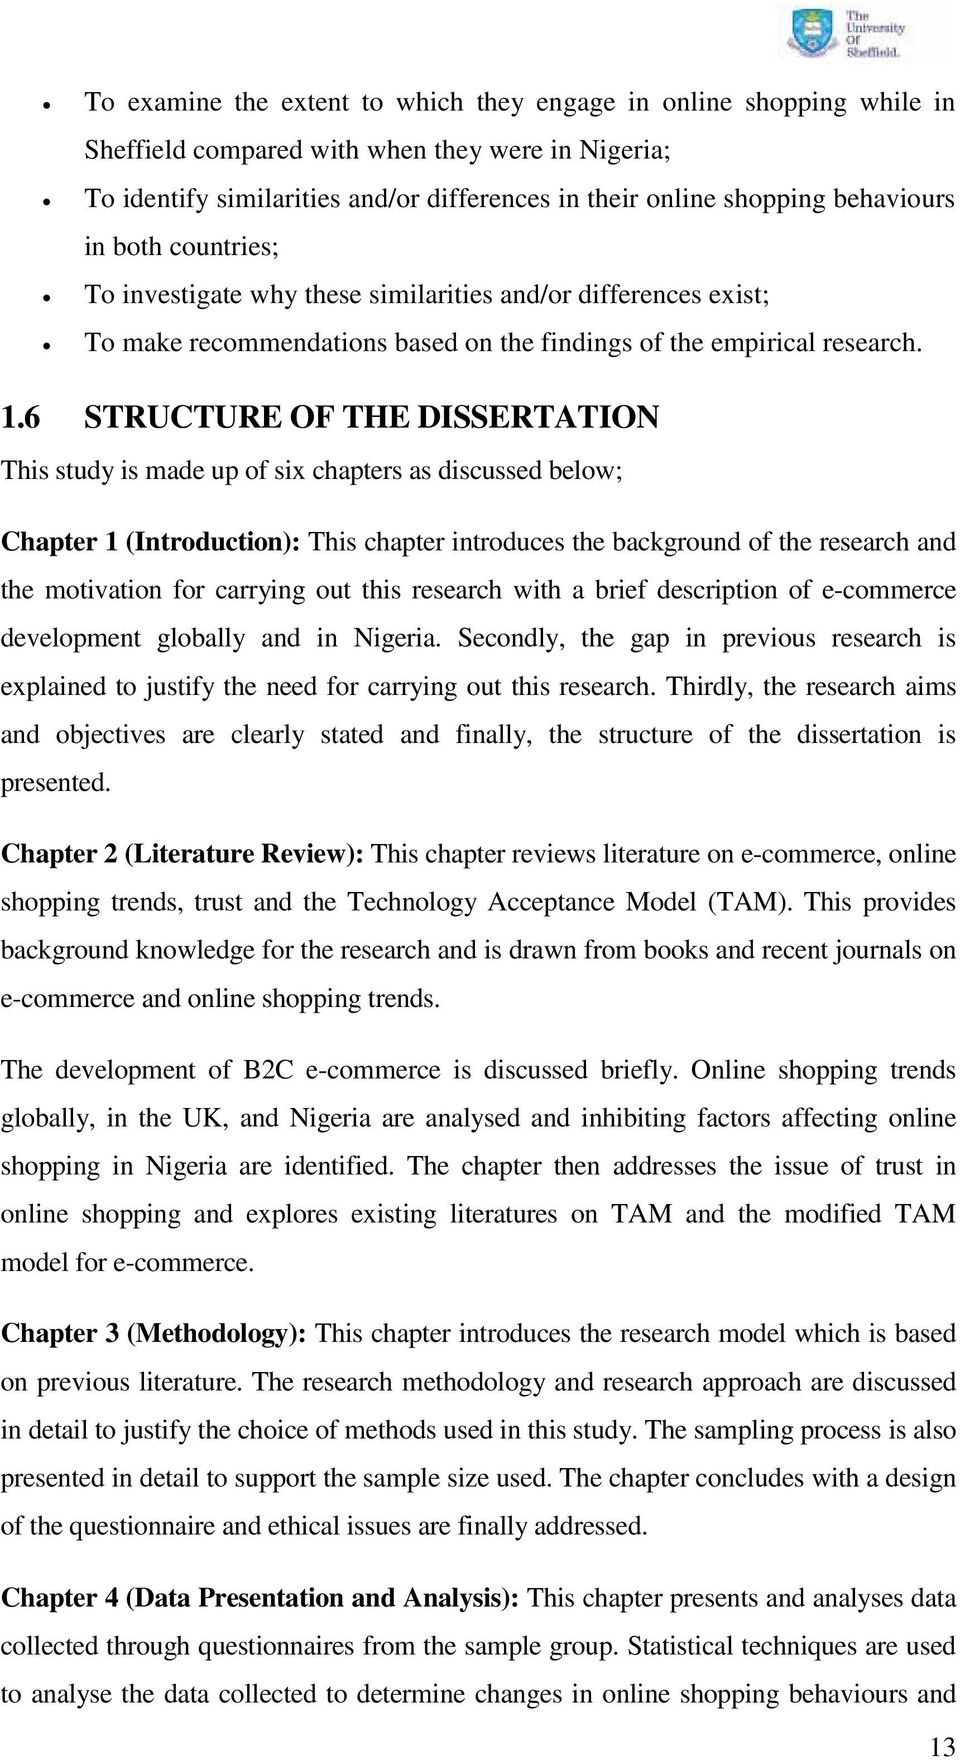 online dissertation and thesis muhs